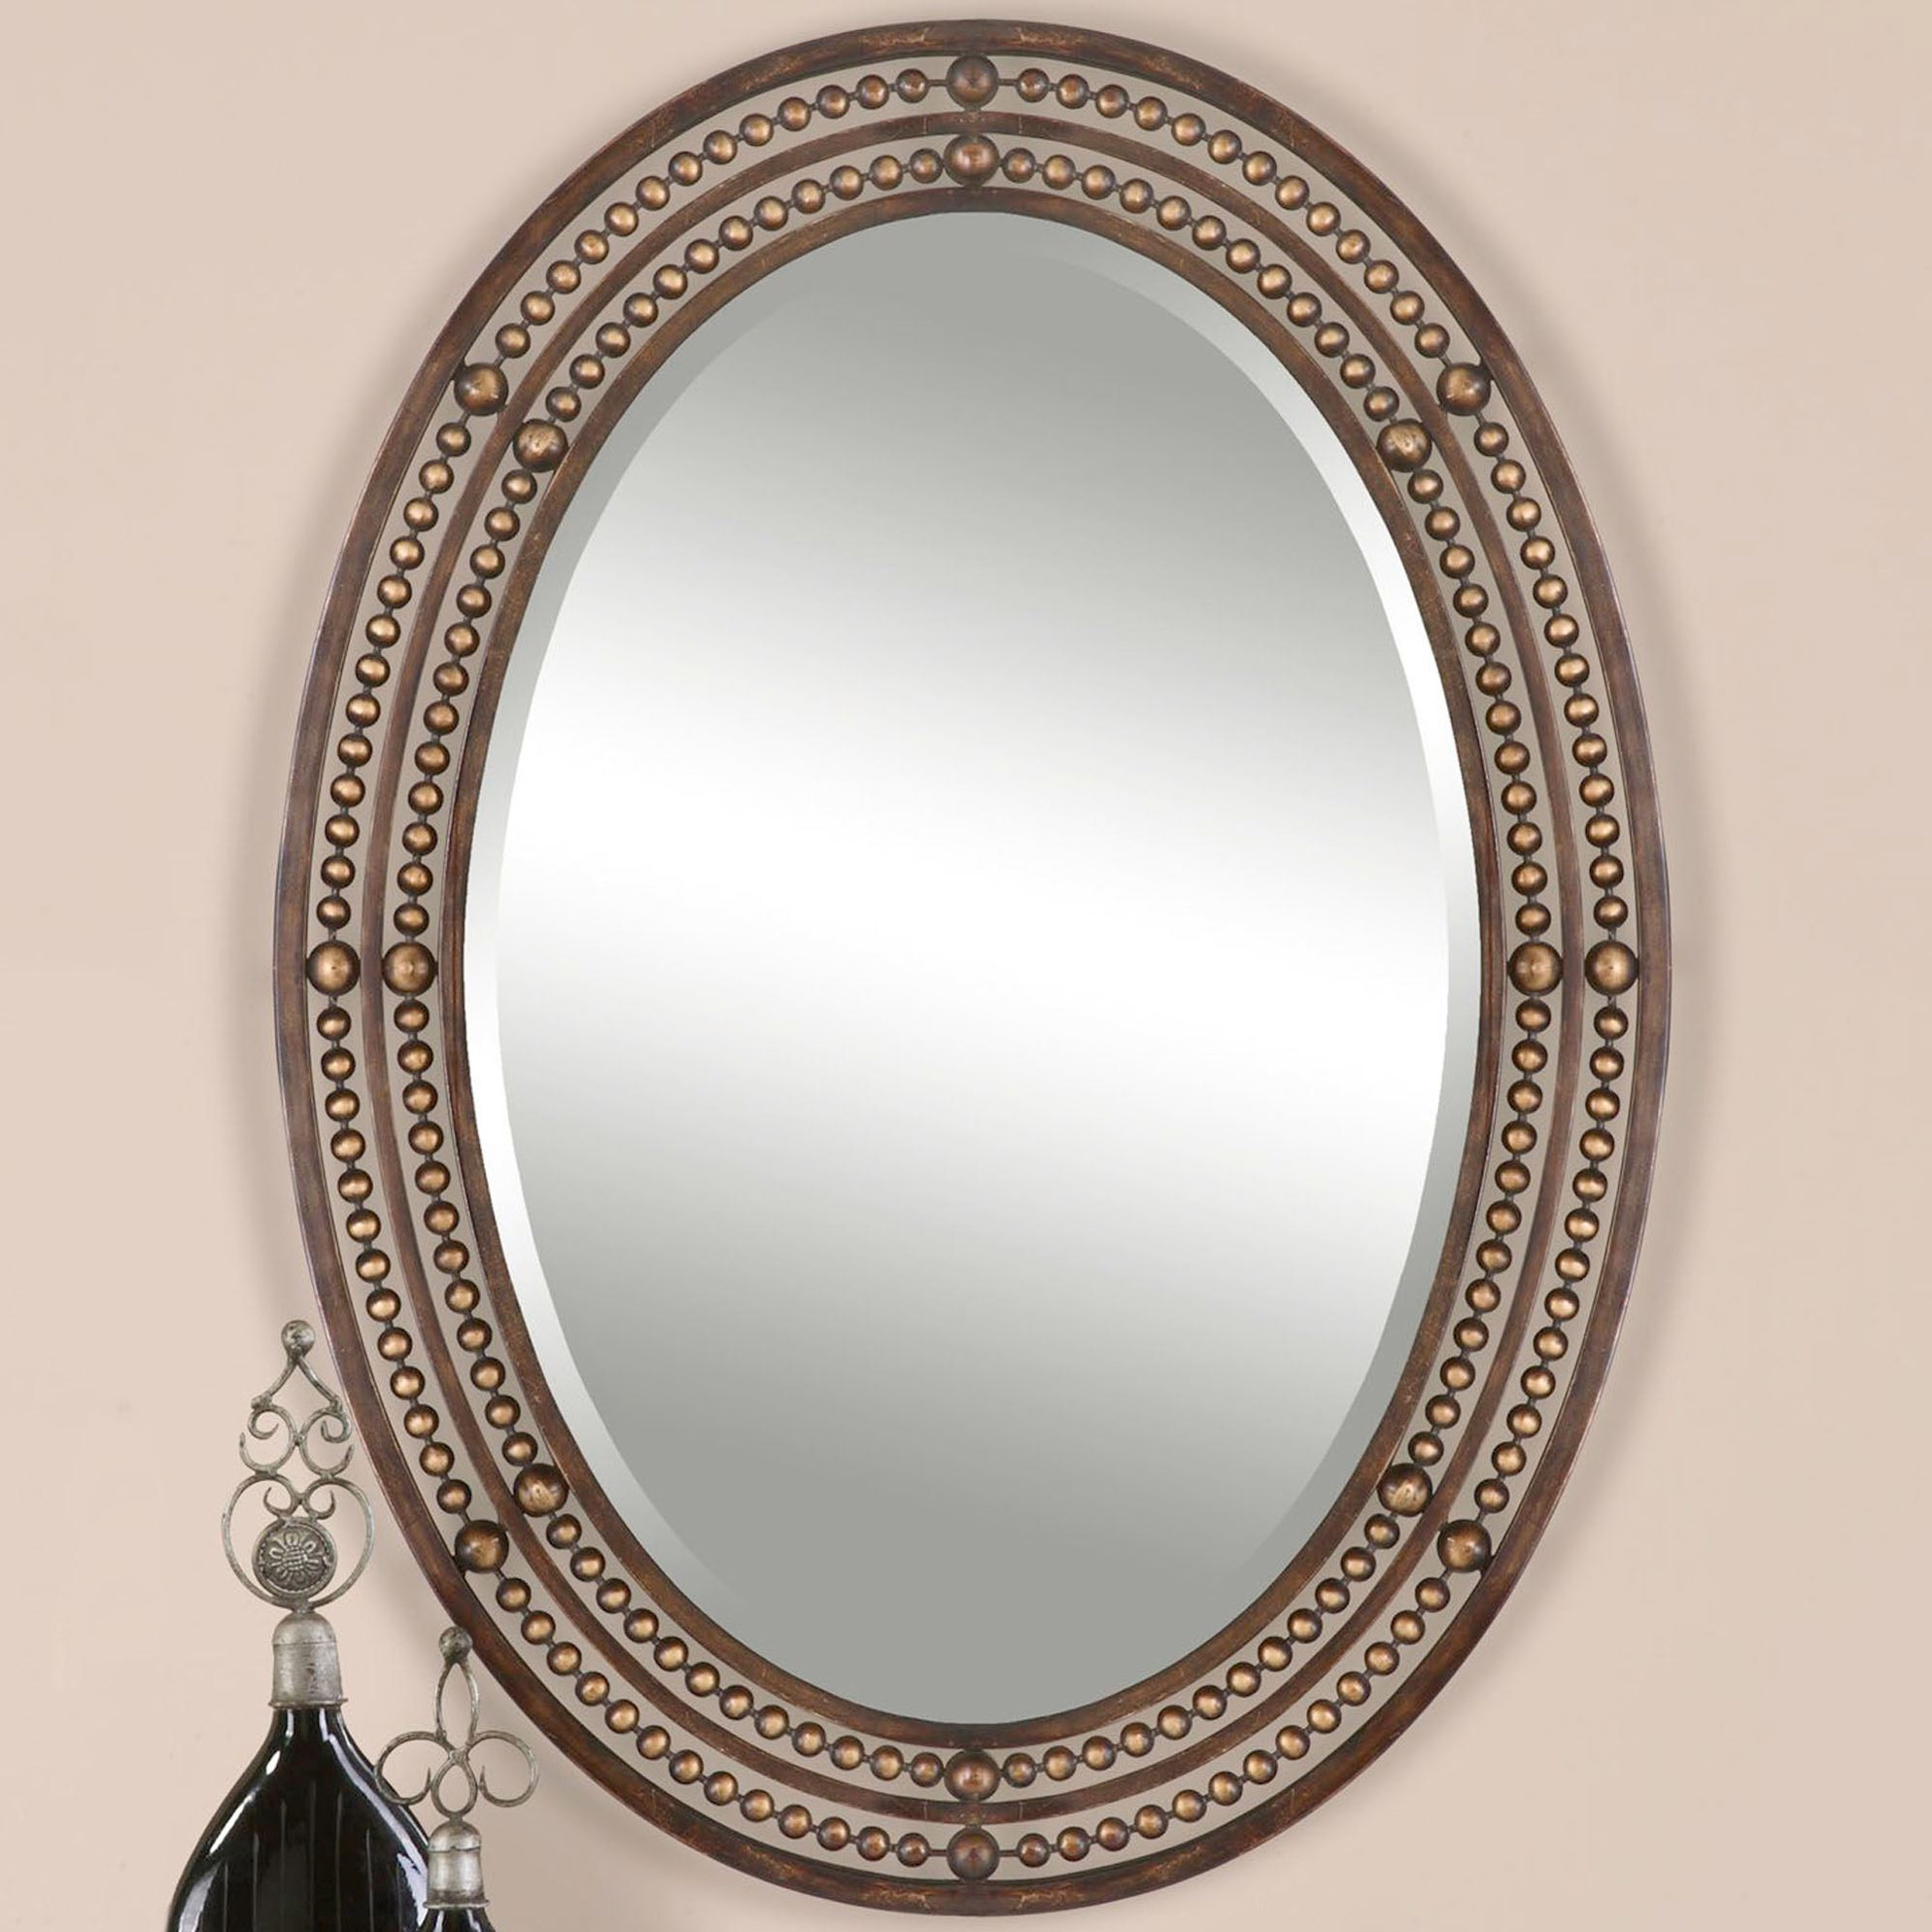 Large Oval Wall Mirrors Courtagerivegauche Regarding Large Oval Wall Mirror (Image 11 of 14)